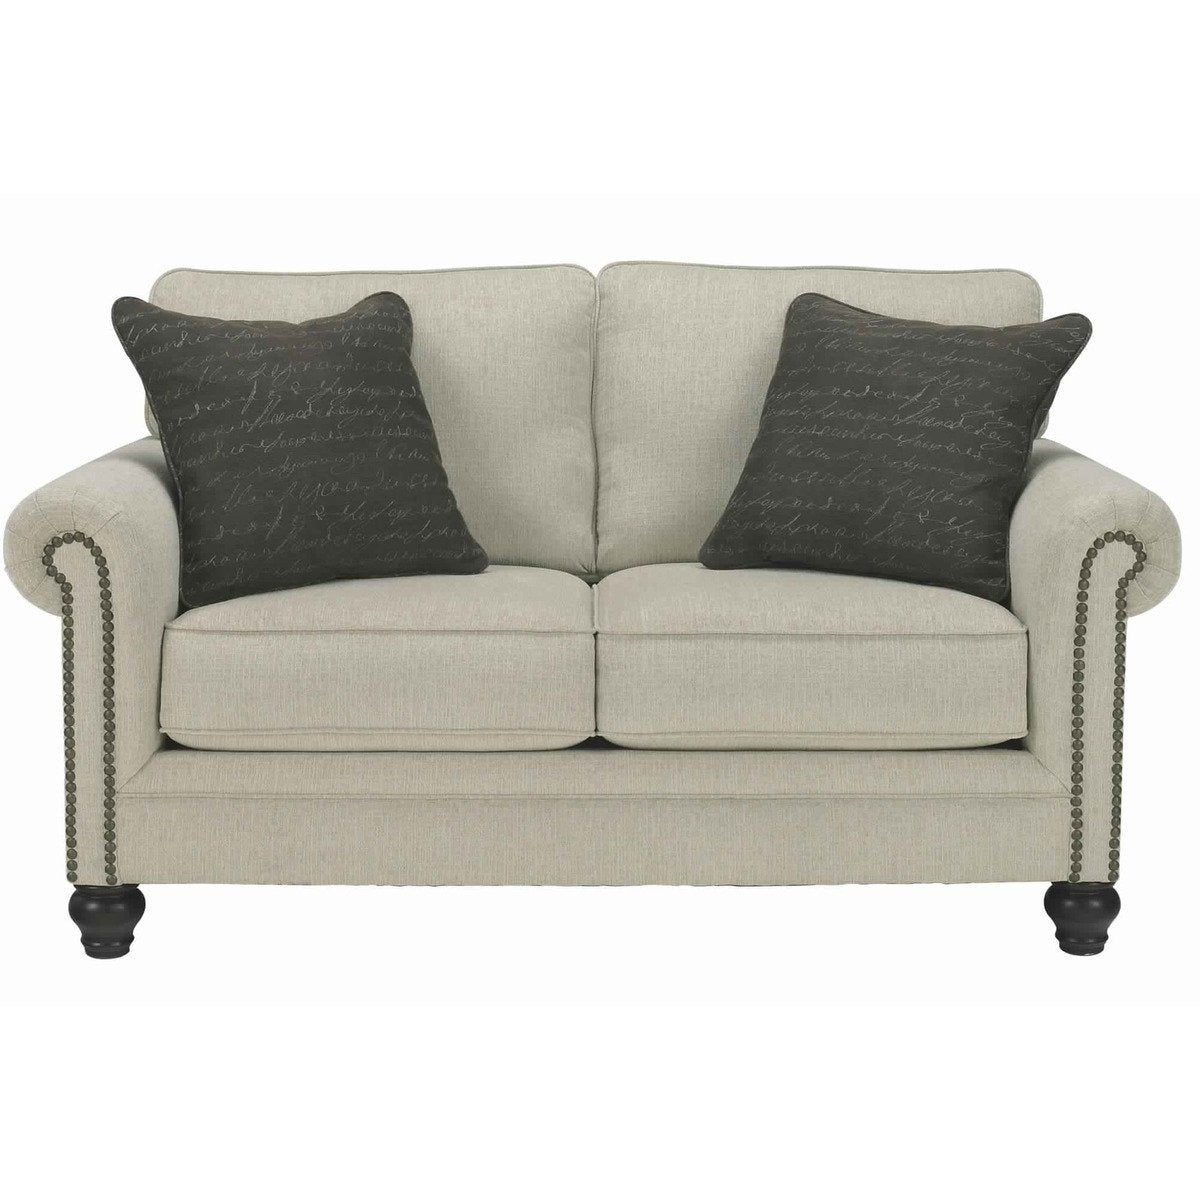 Sofas, Sectionals & Loveseats - Fabric Upholstered Wooden Loveseat With Nailhead Trim Details,